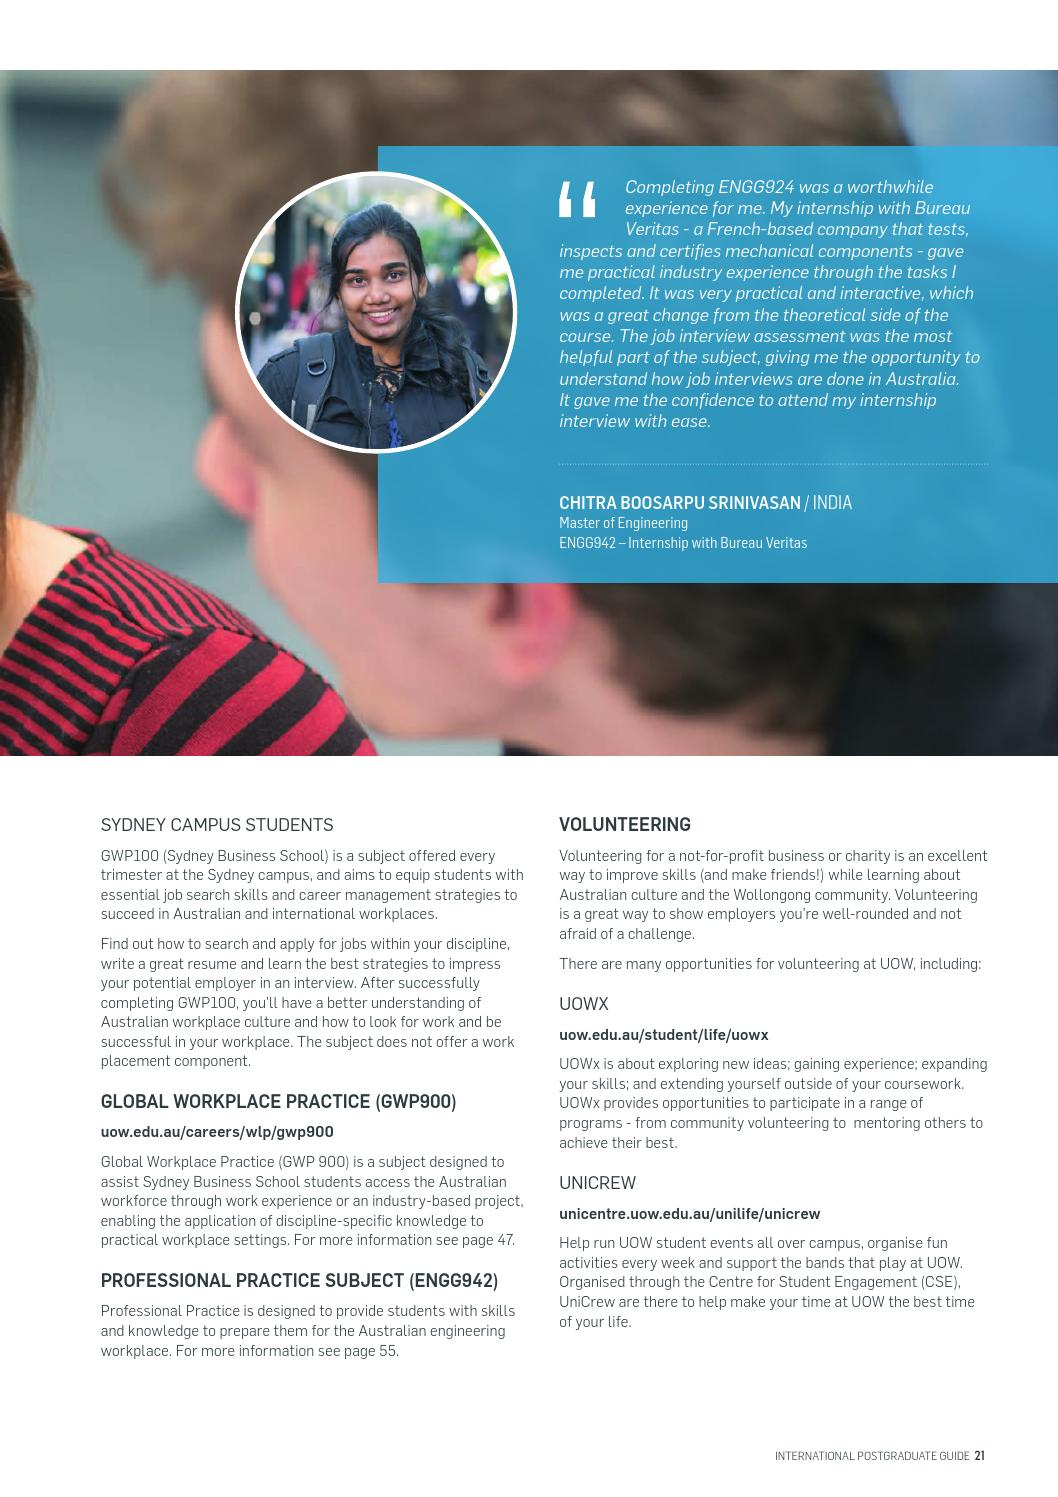 UOW International Postgraduate Guide 2016 by University of